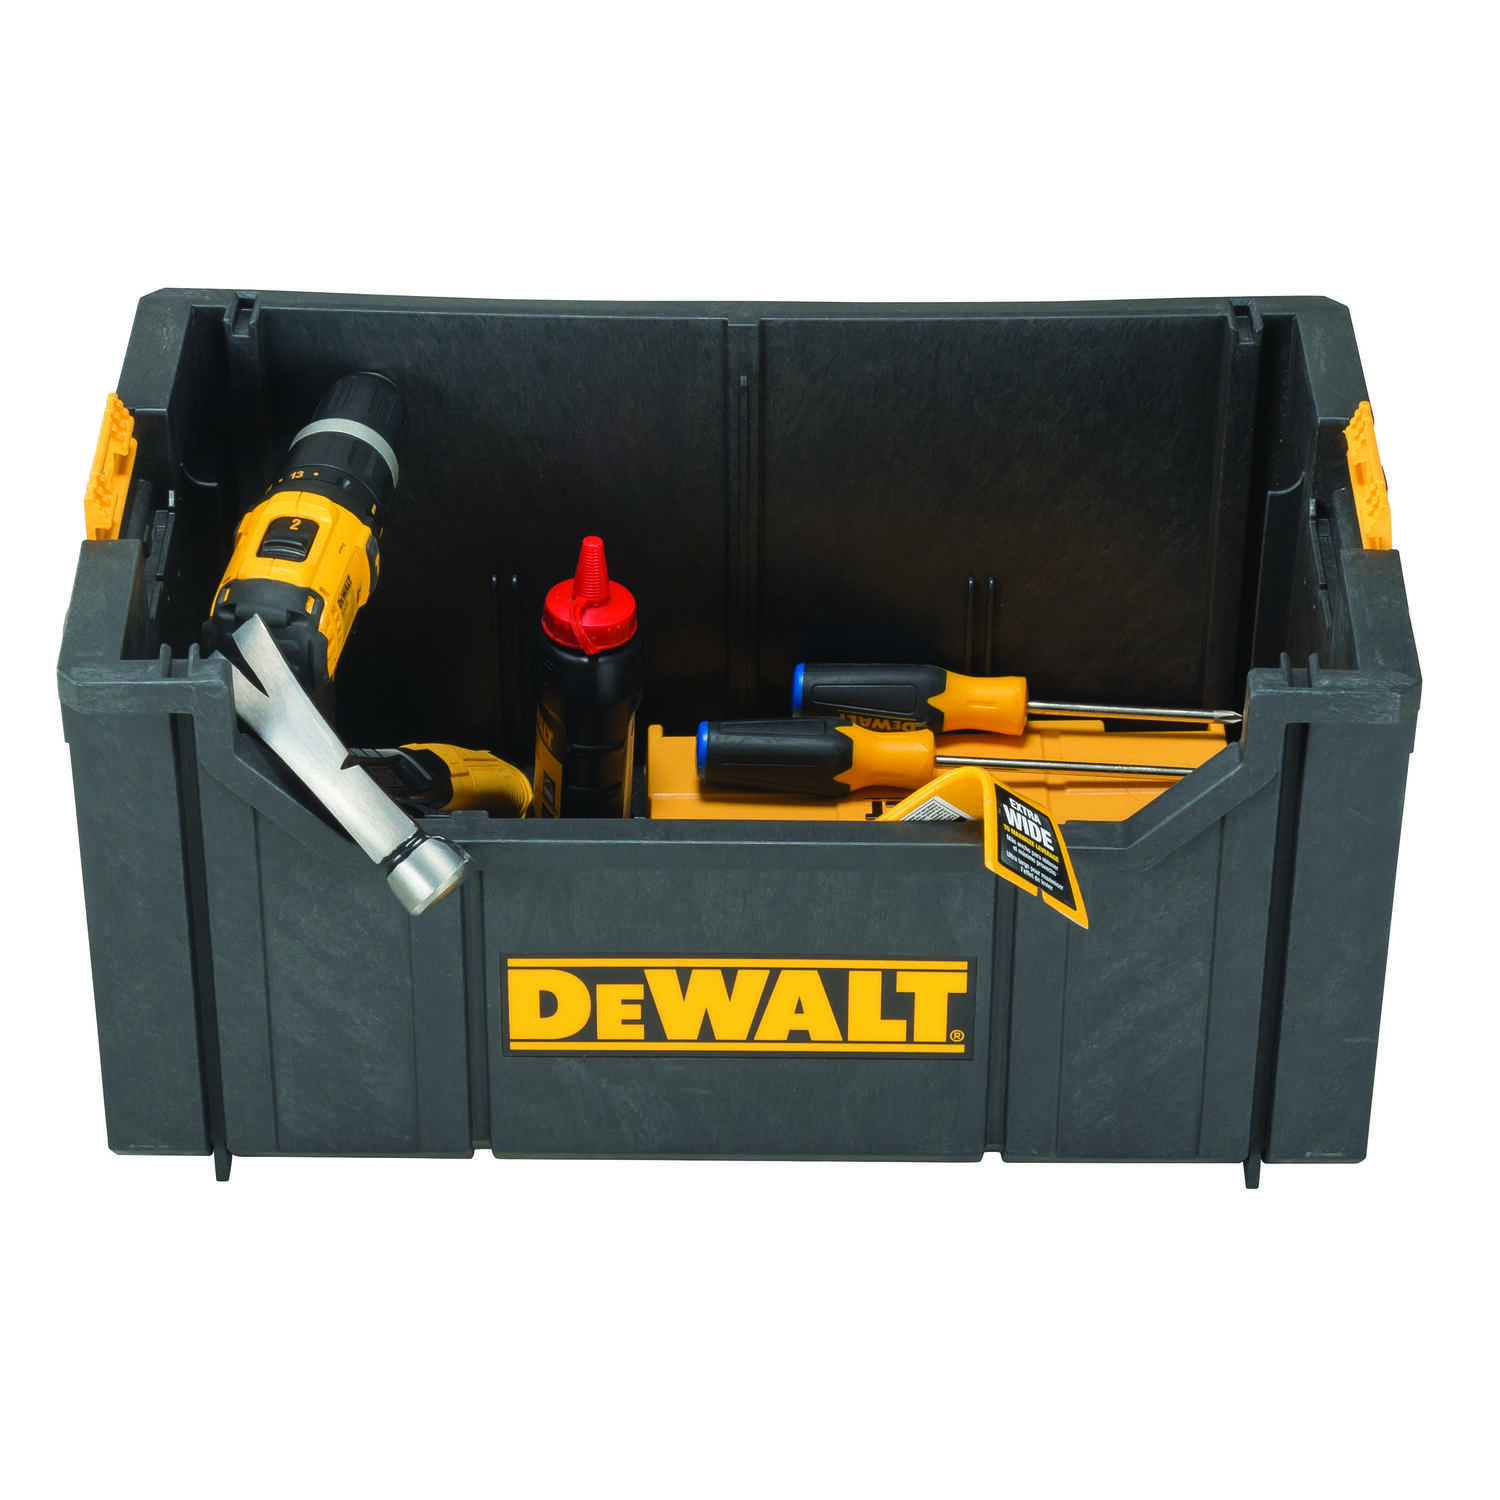 DeWalt  ToughSystem  21 in. Polypropylene  Tool Tote  12 in. W x 10 in. H Black